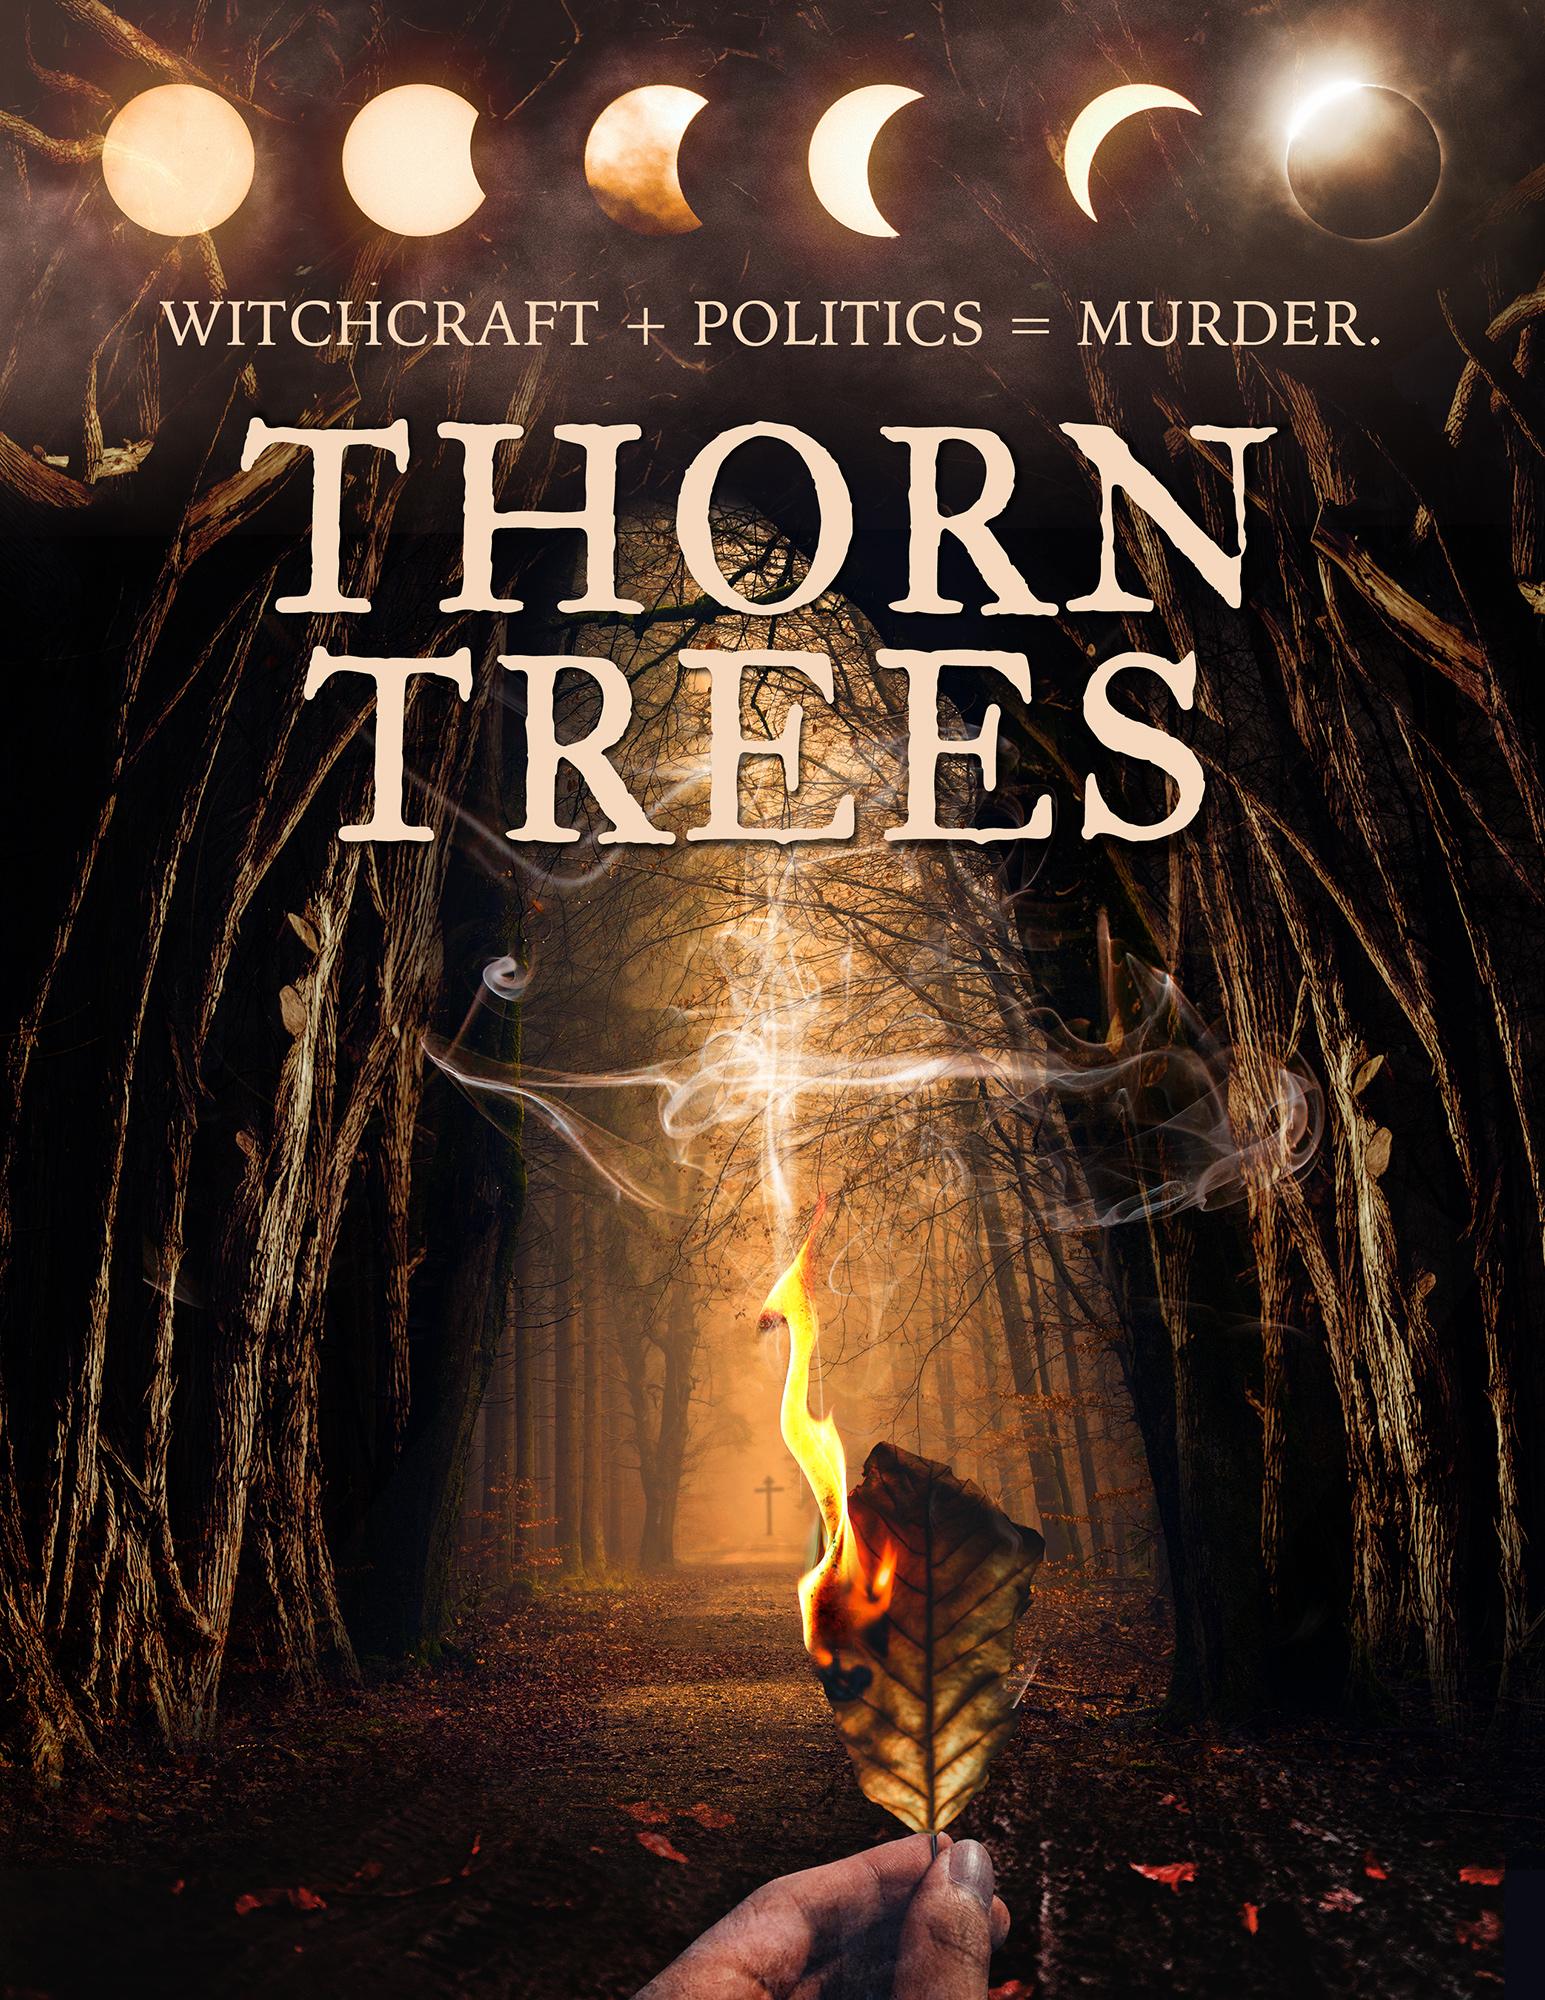 thorn_trees3